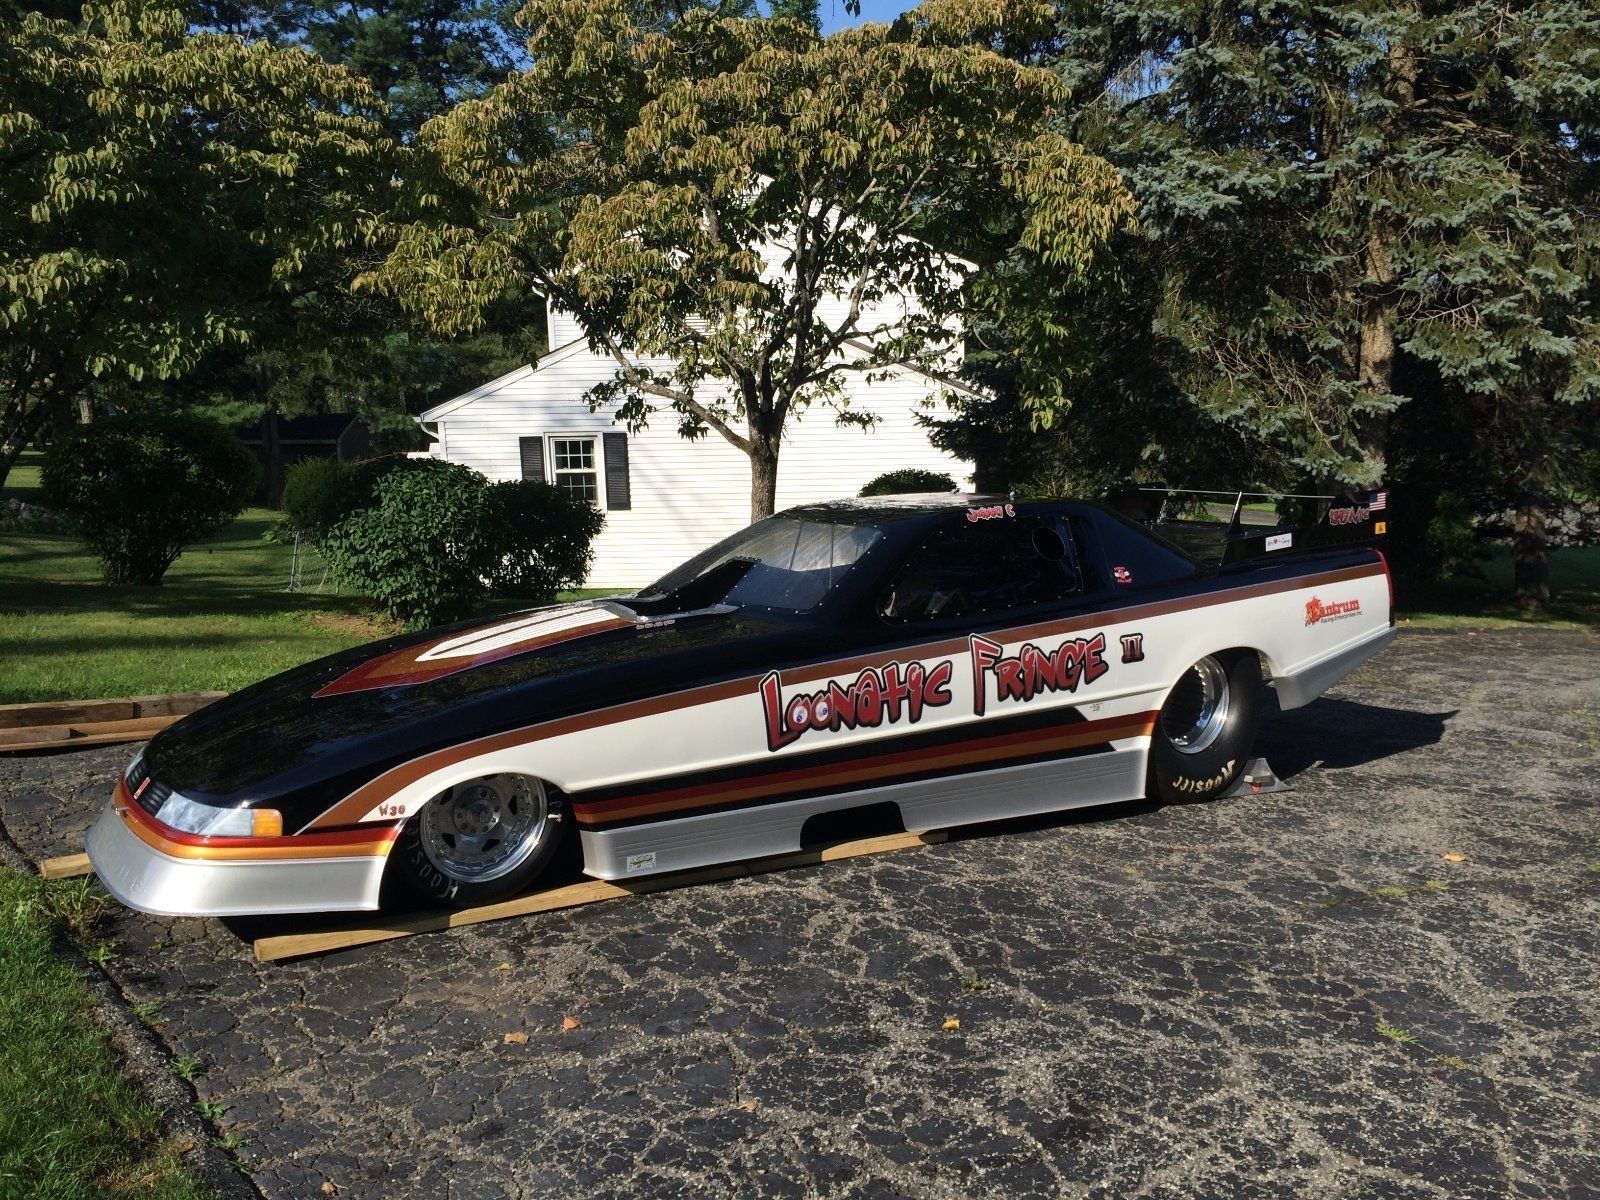 Auto For Sale For Sale: 1996 Oldsmobile Cutlass Supreme Alcohol Funny Car For Sale